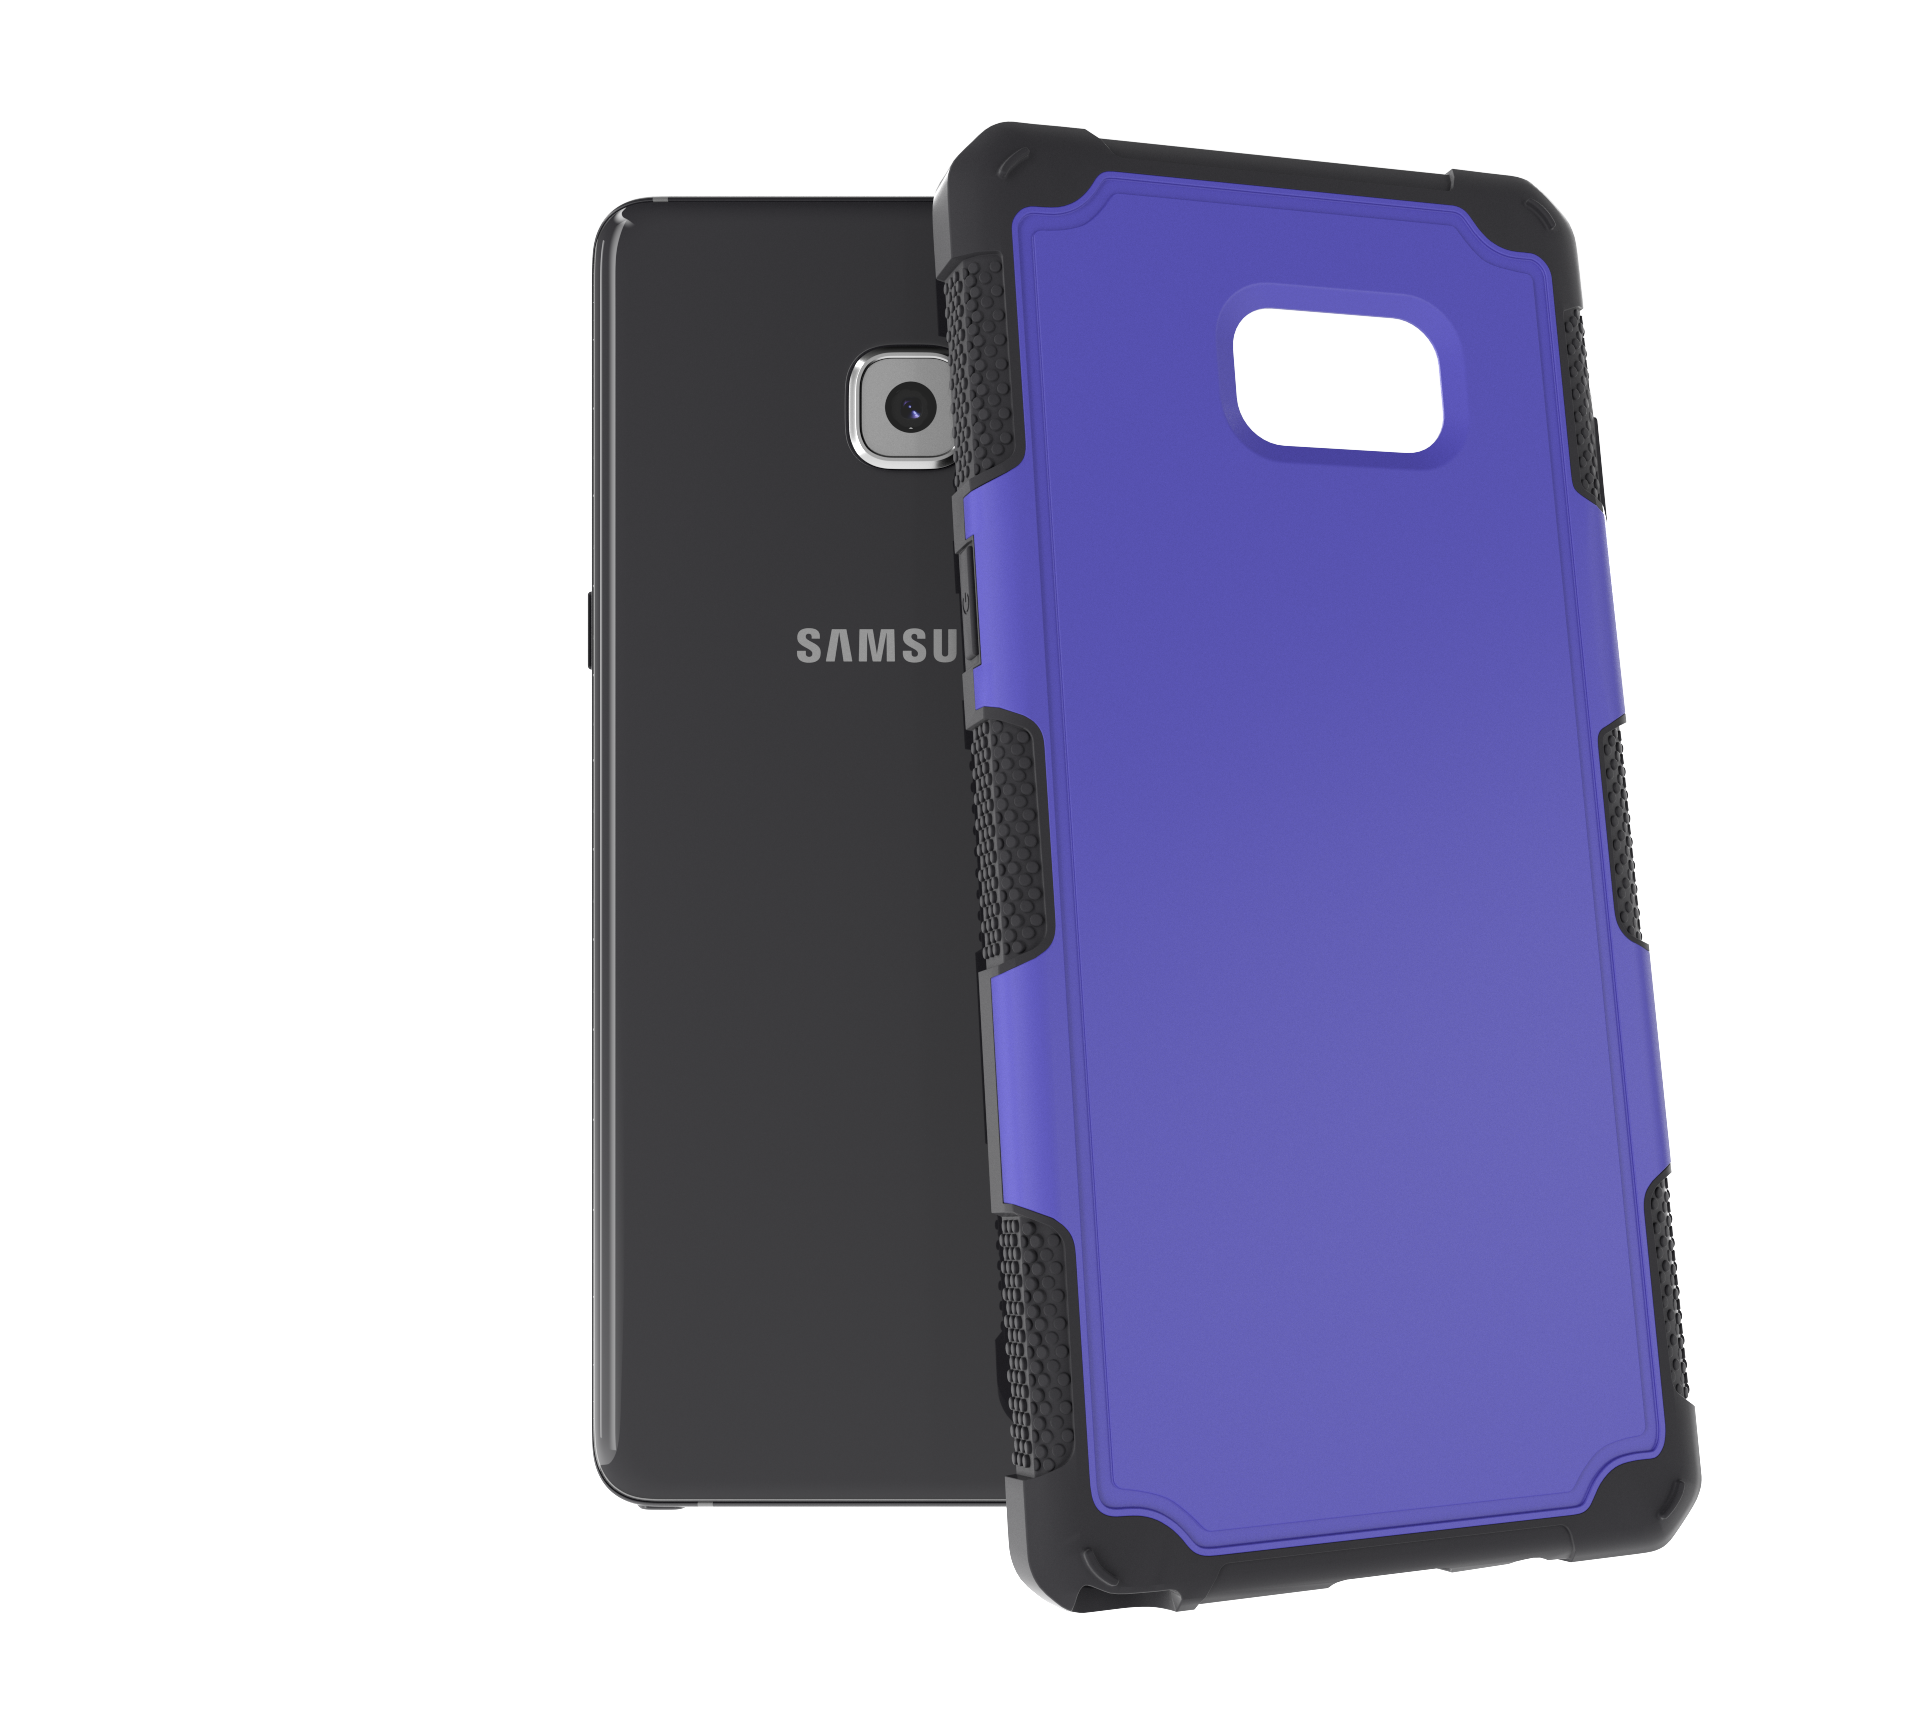 new arrival ab85c 3b6d4 Samsung Galaxy Note 7 with phone case